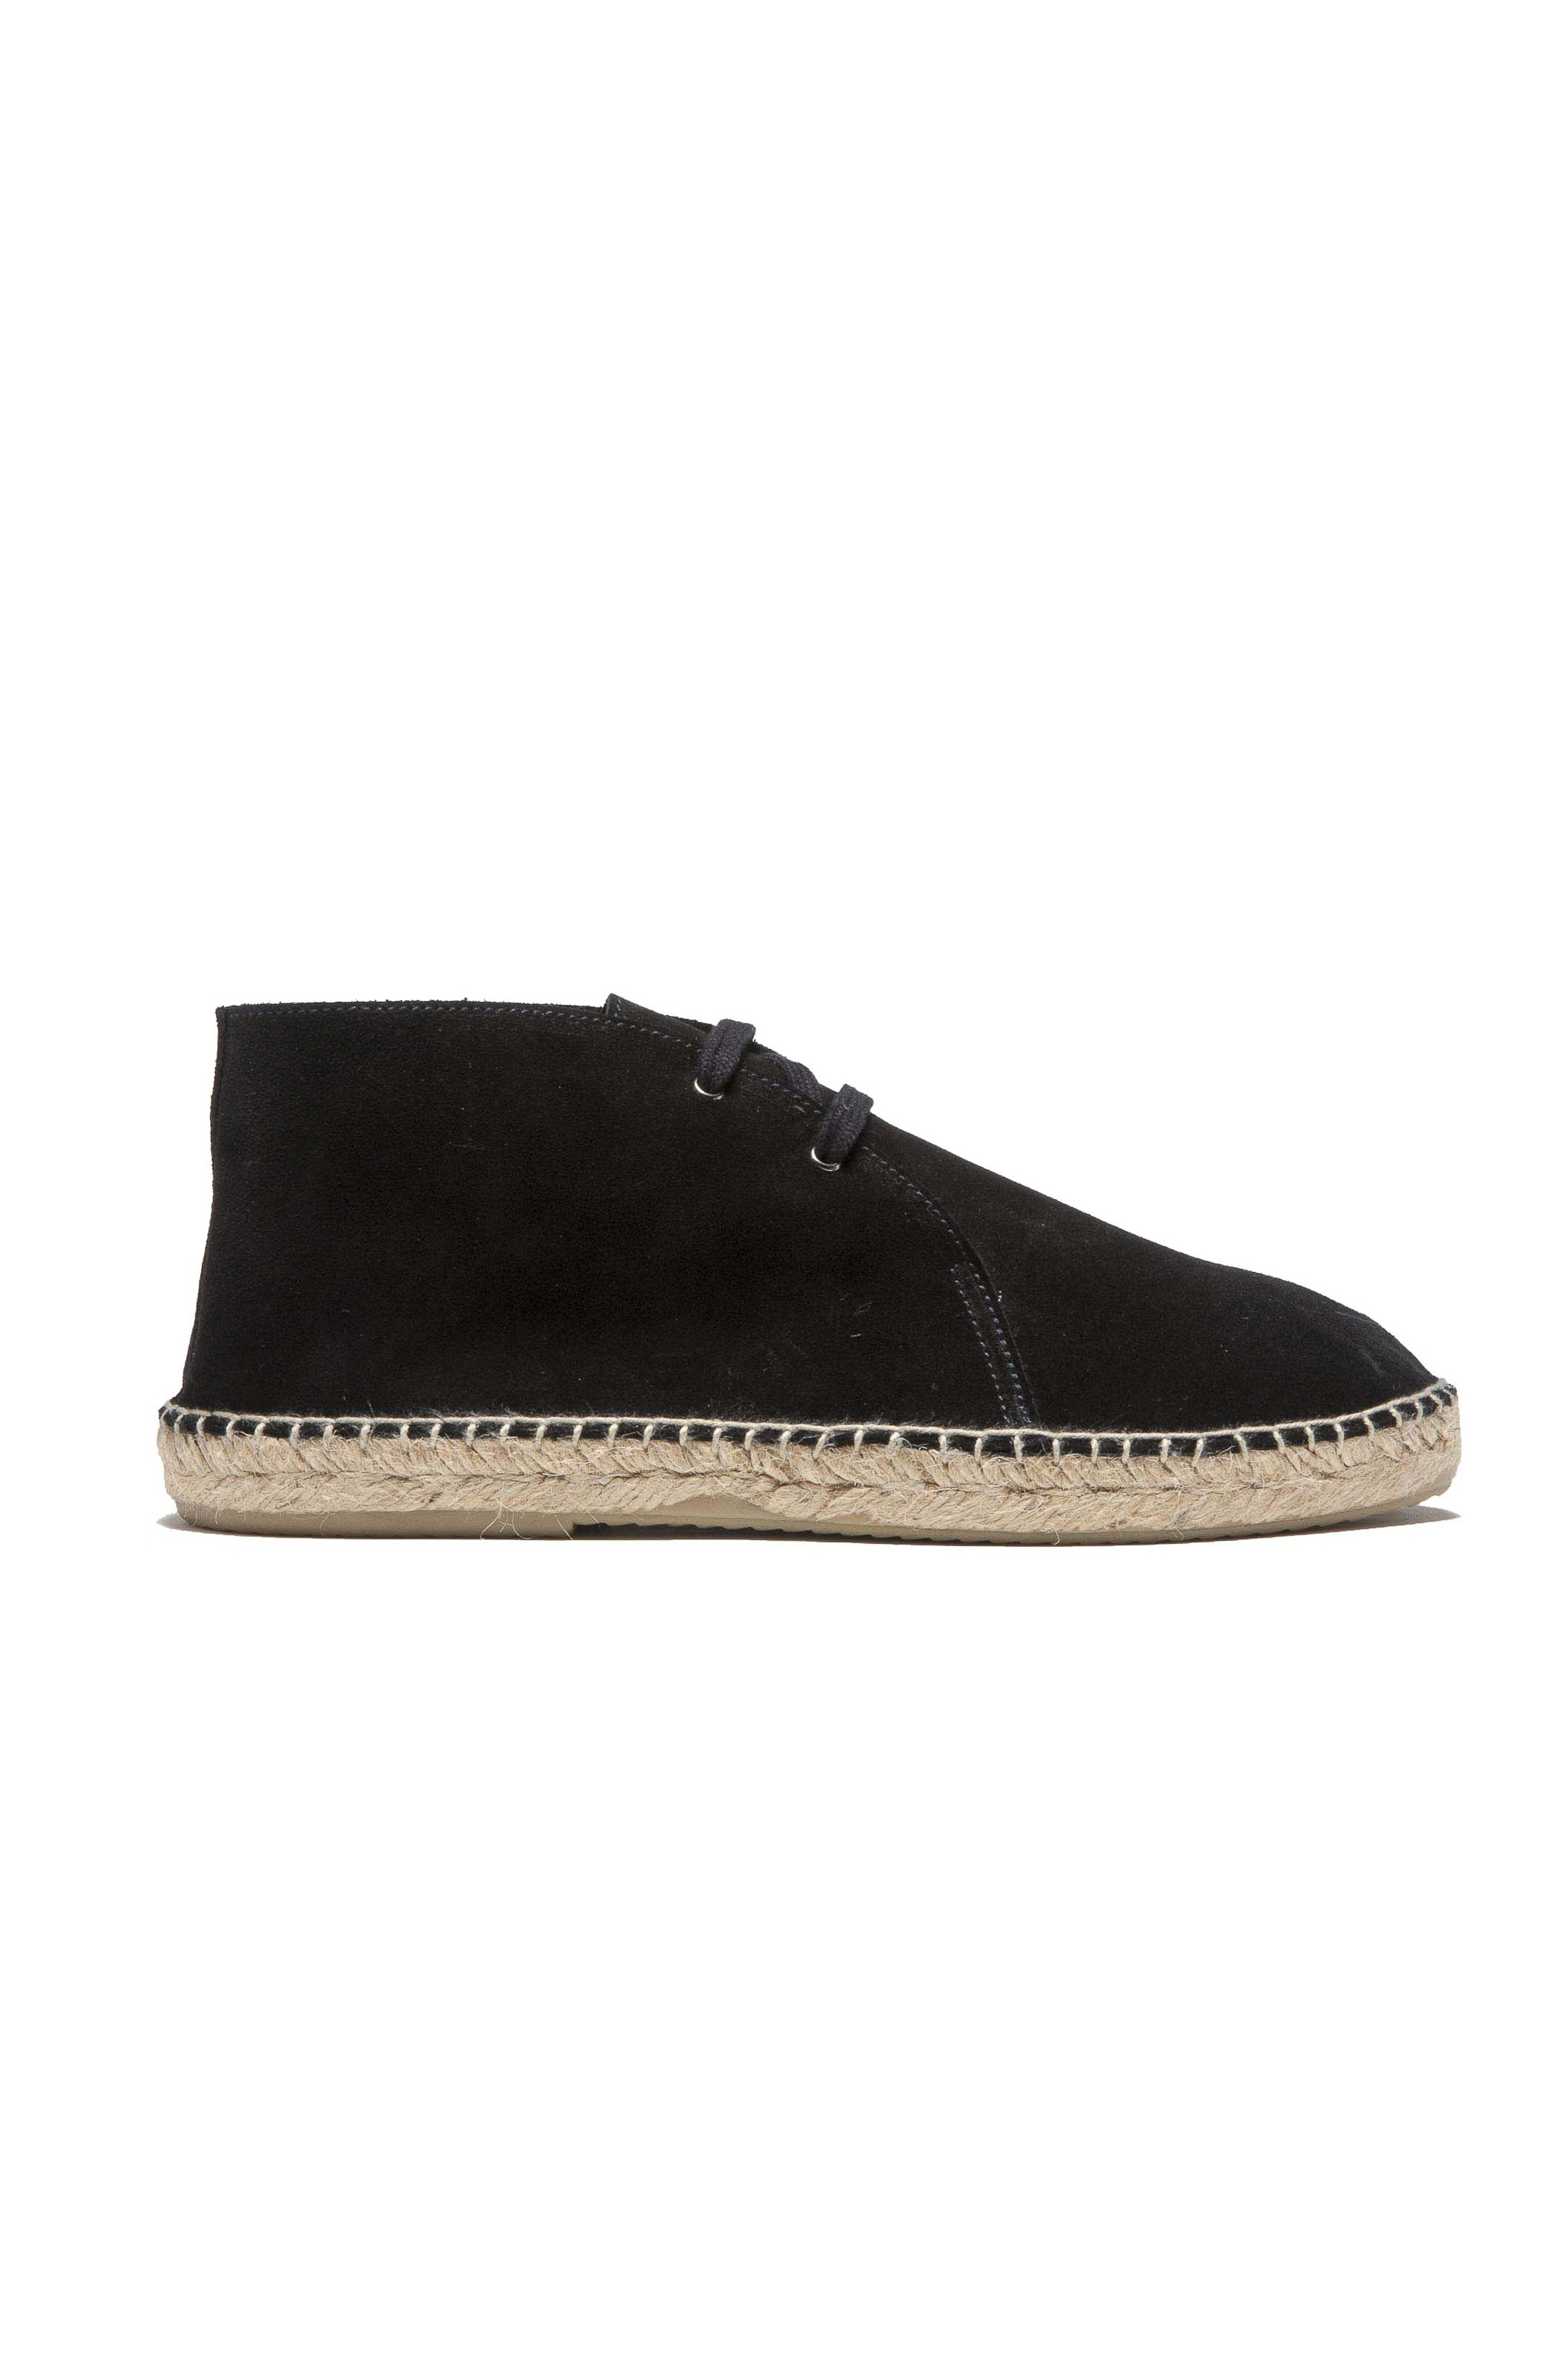 SBU 03182_2021SS Original black suede leather lace up espadrilles with rubber sole 01